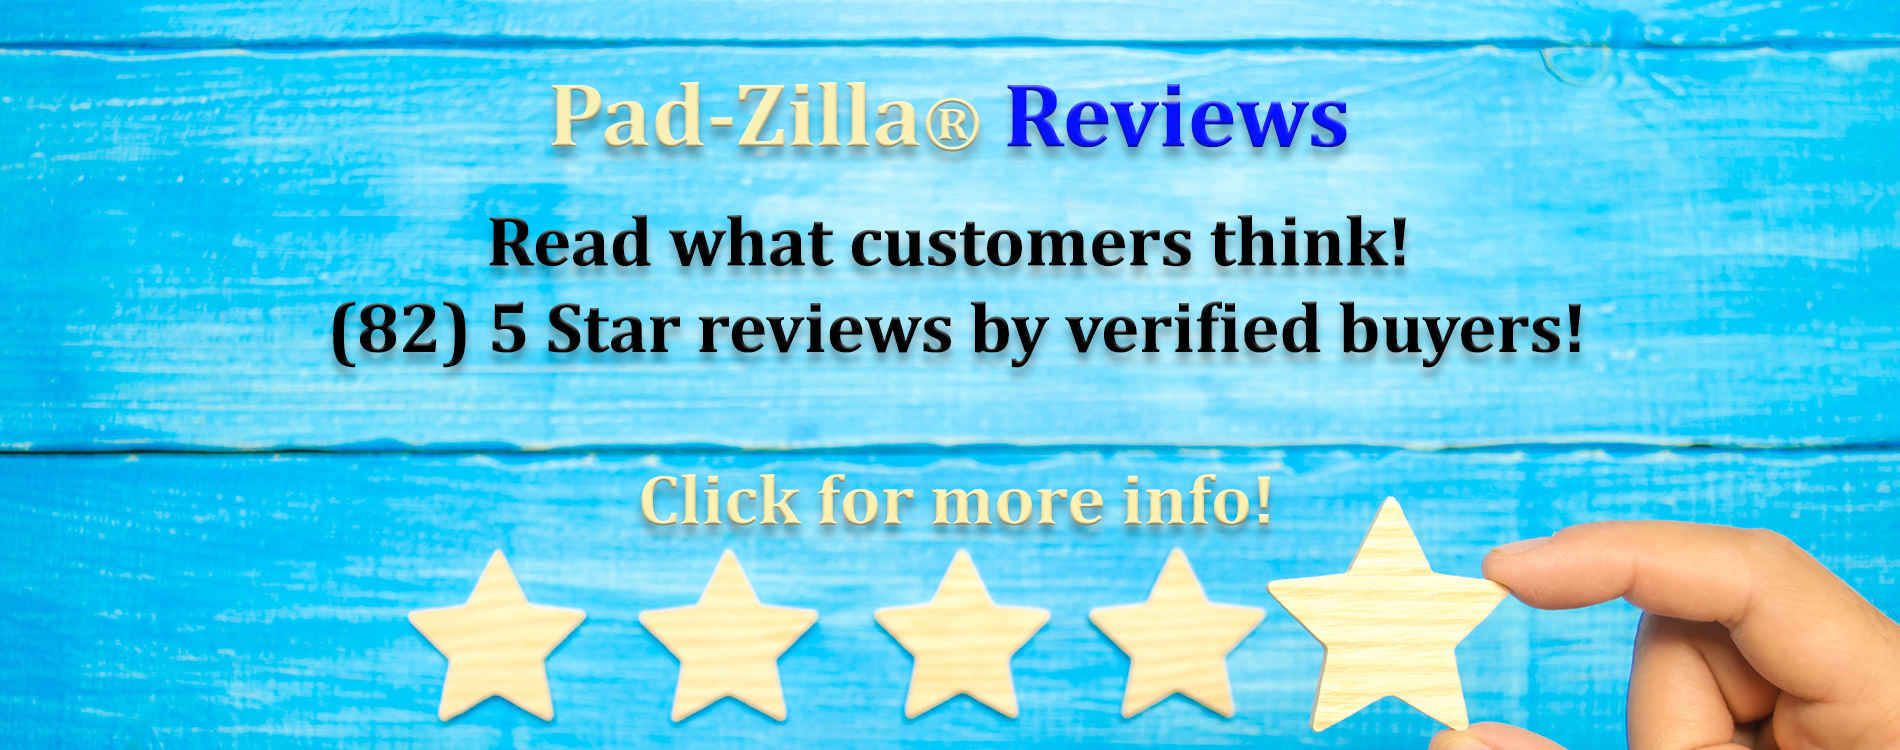 Pad-Zilla® Giant Mouse Pads Verified Buyer Reviews - As Always!